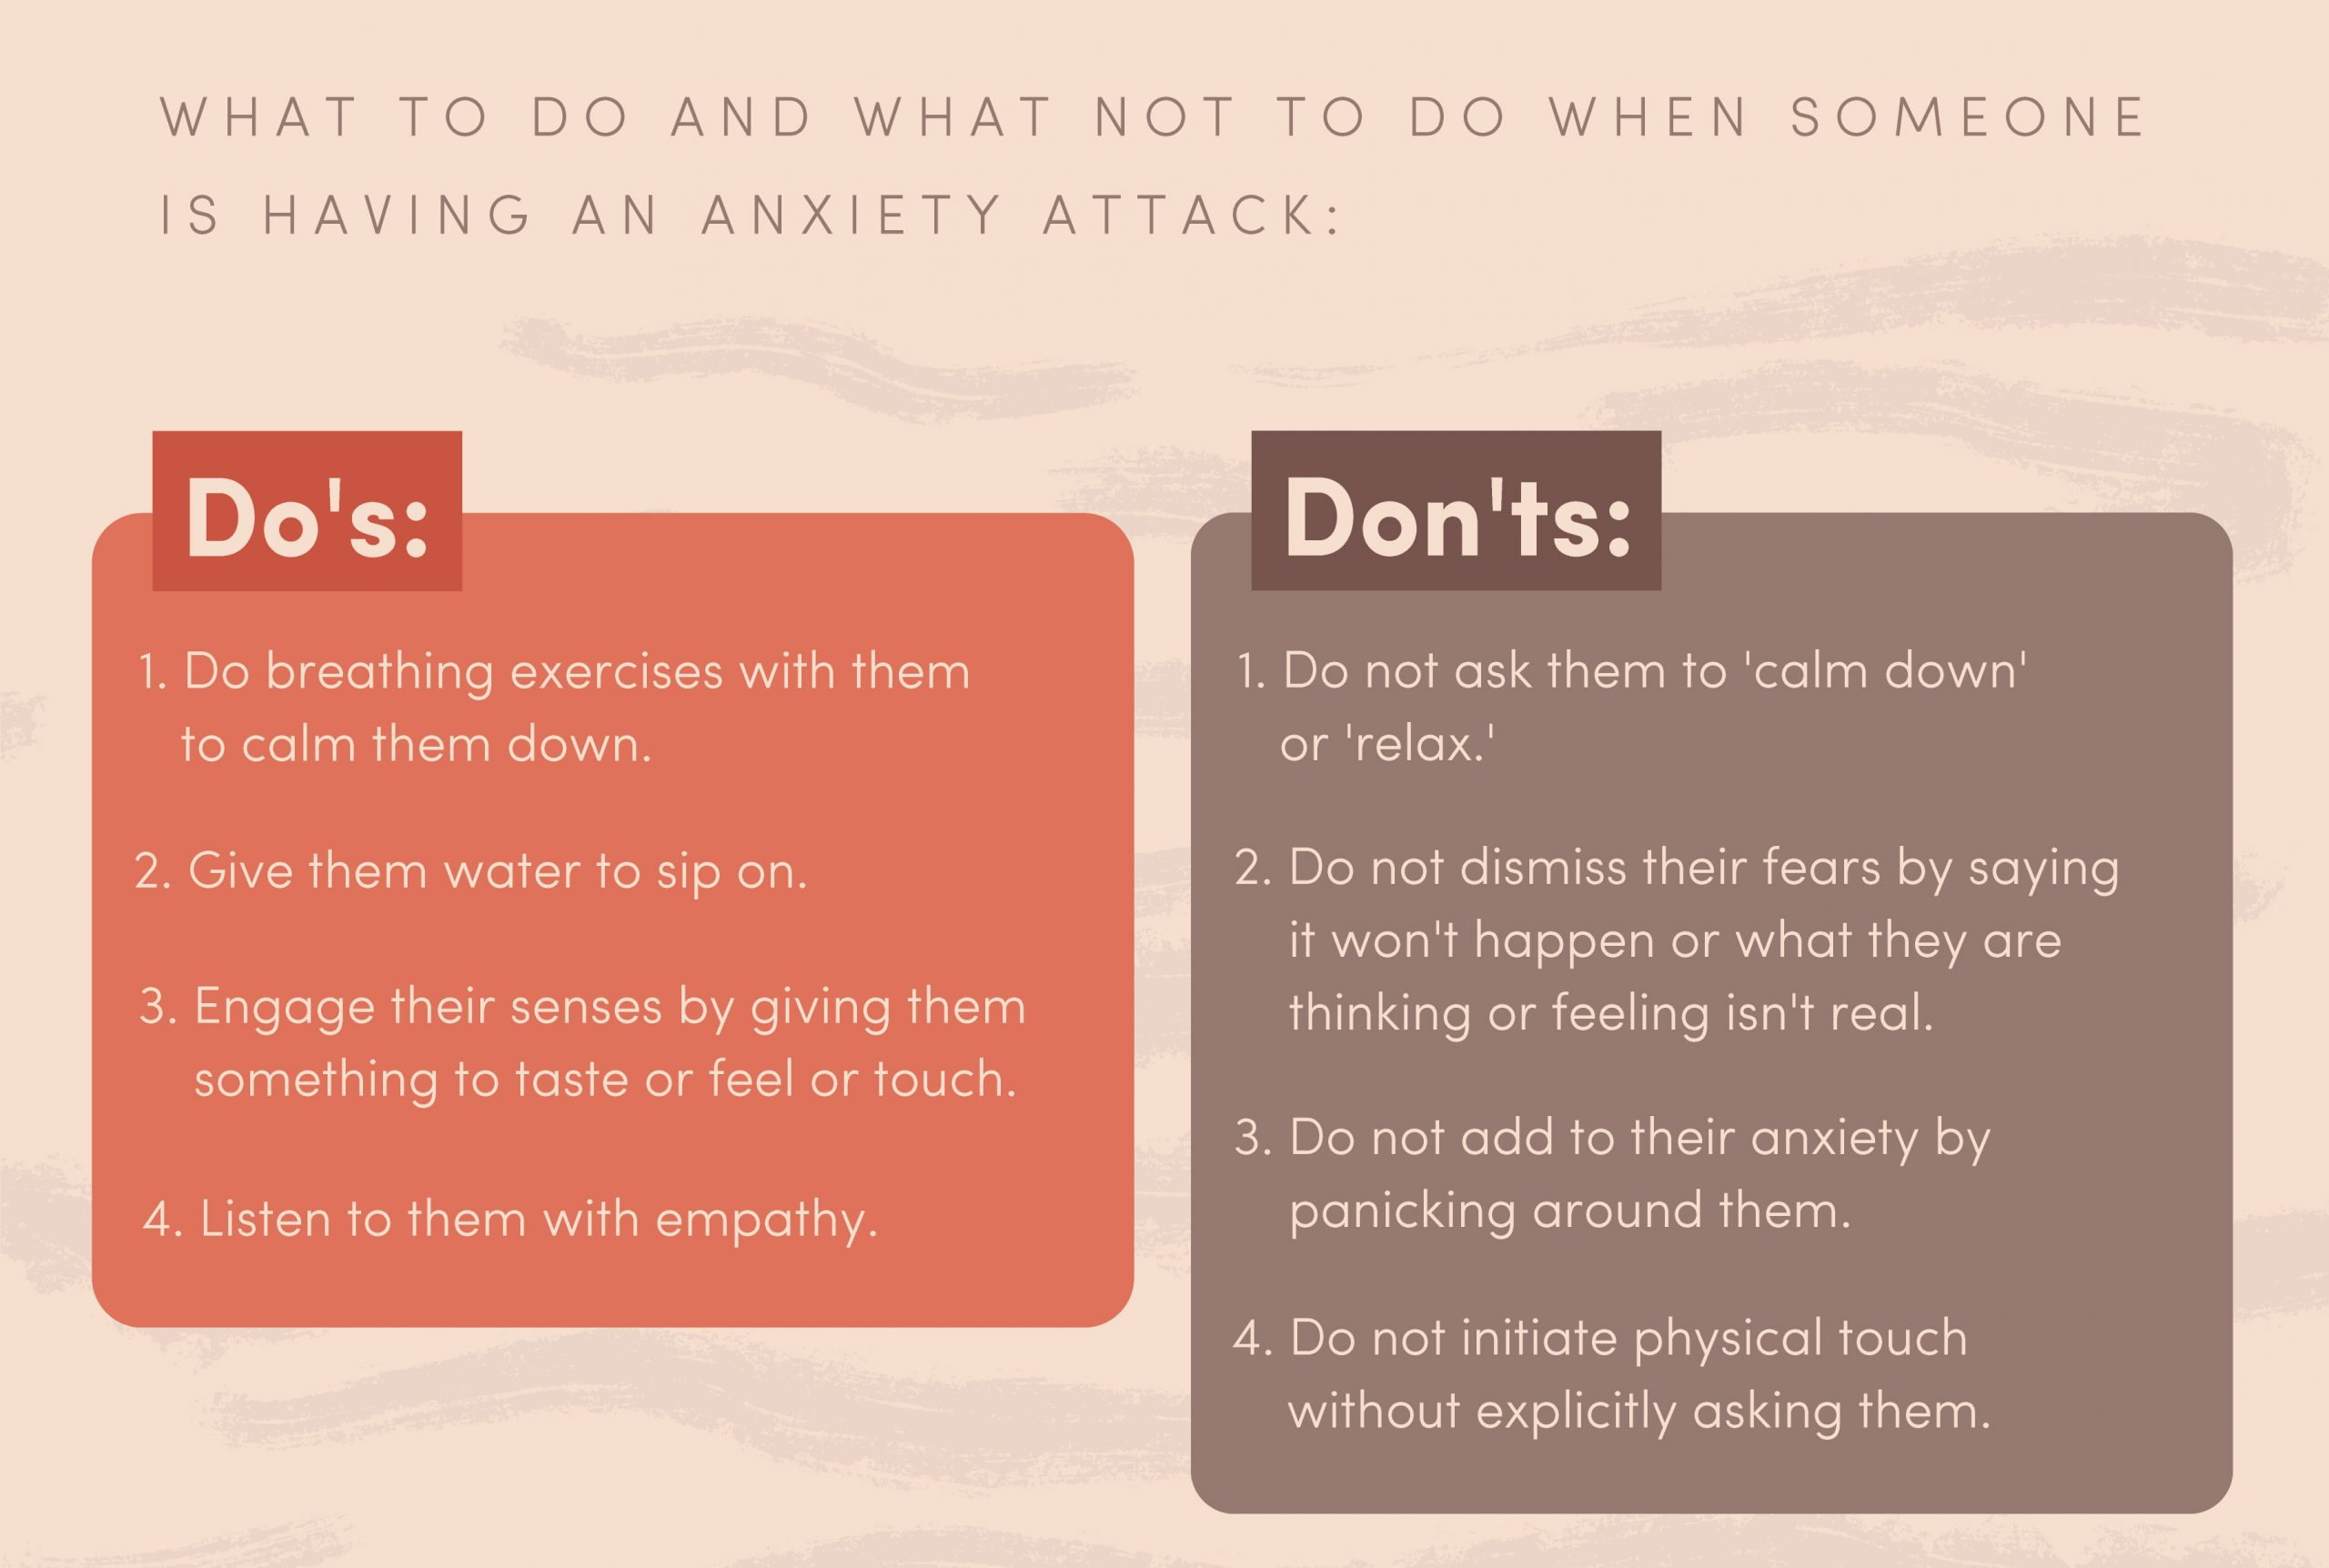 A list of do's and don'ts for dealing with an anxiety attack